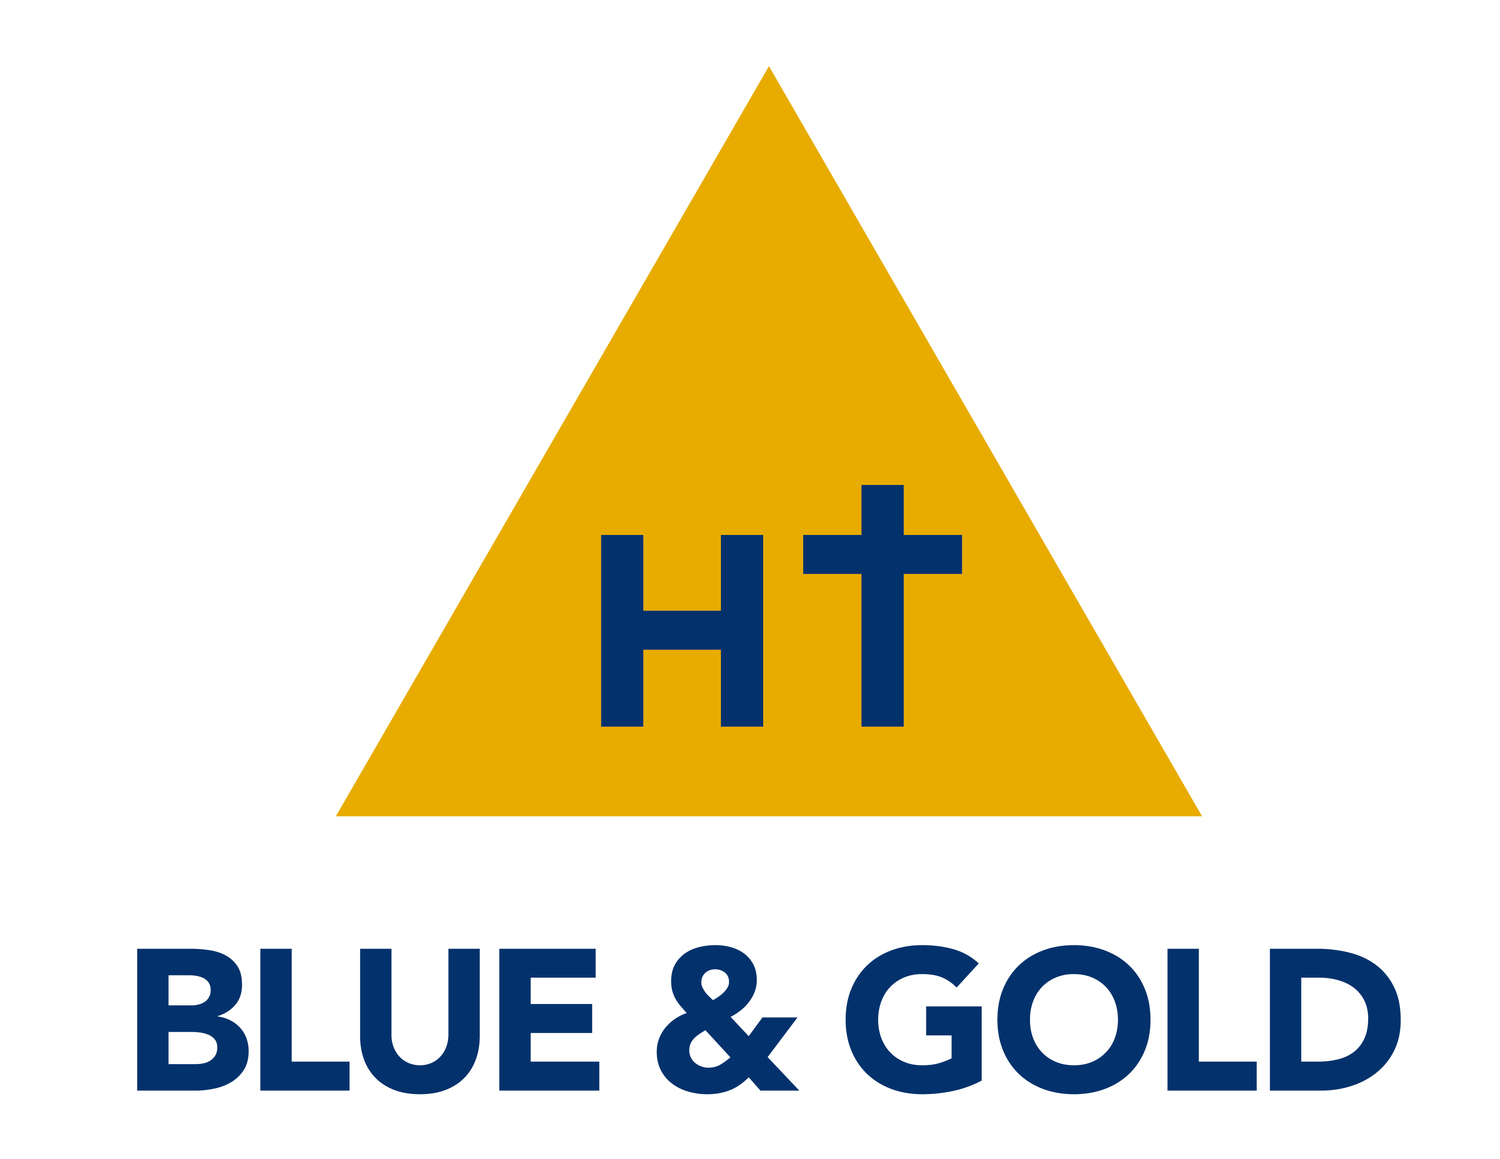 Holy Trinity Blue & Gold